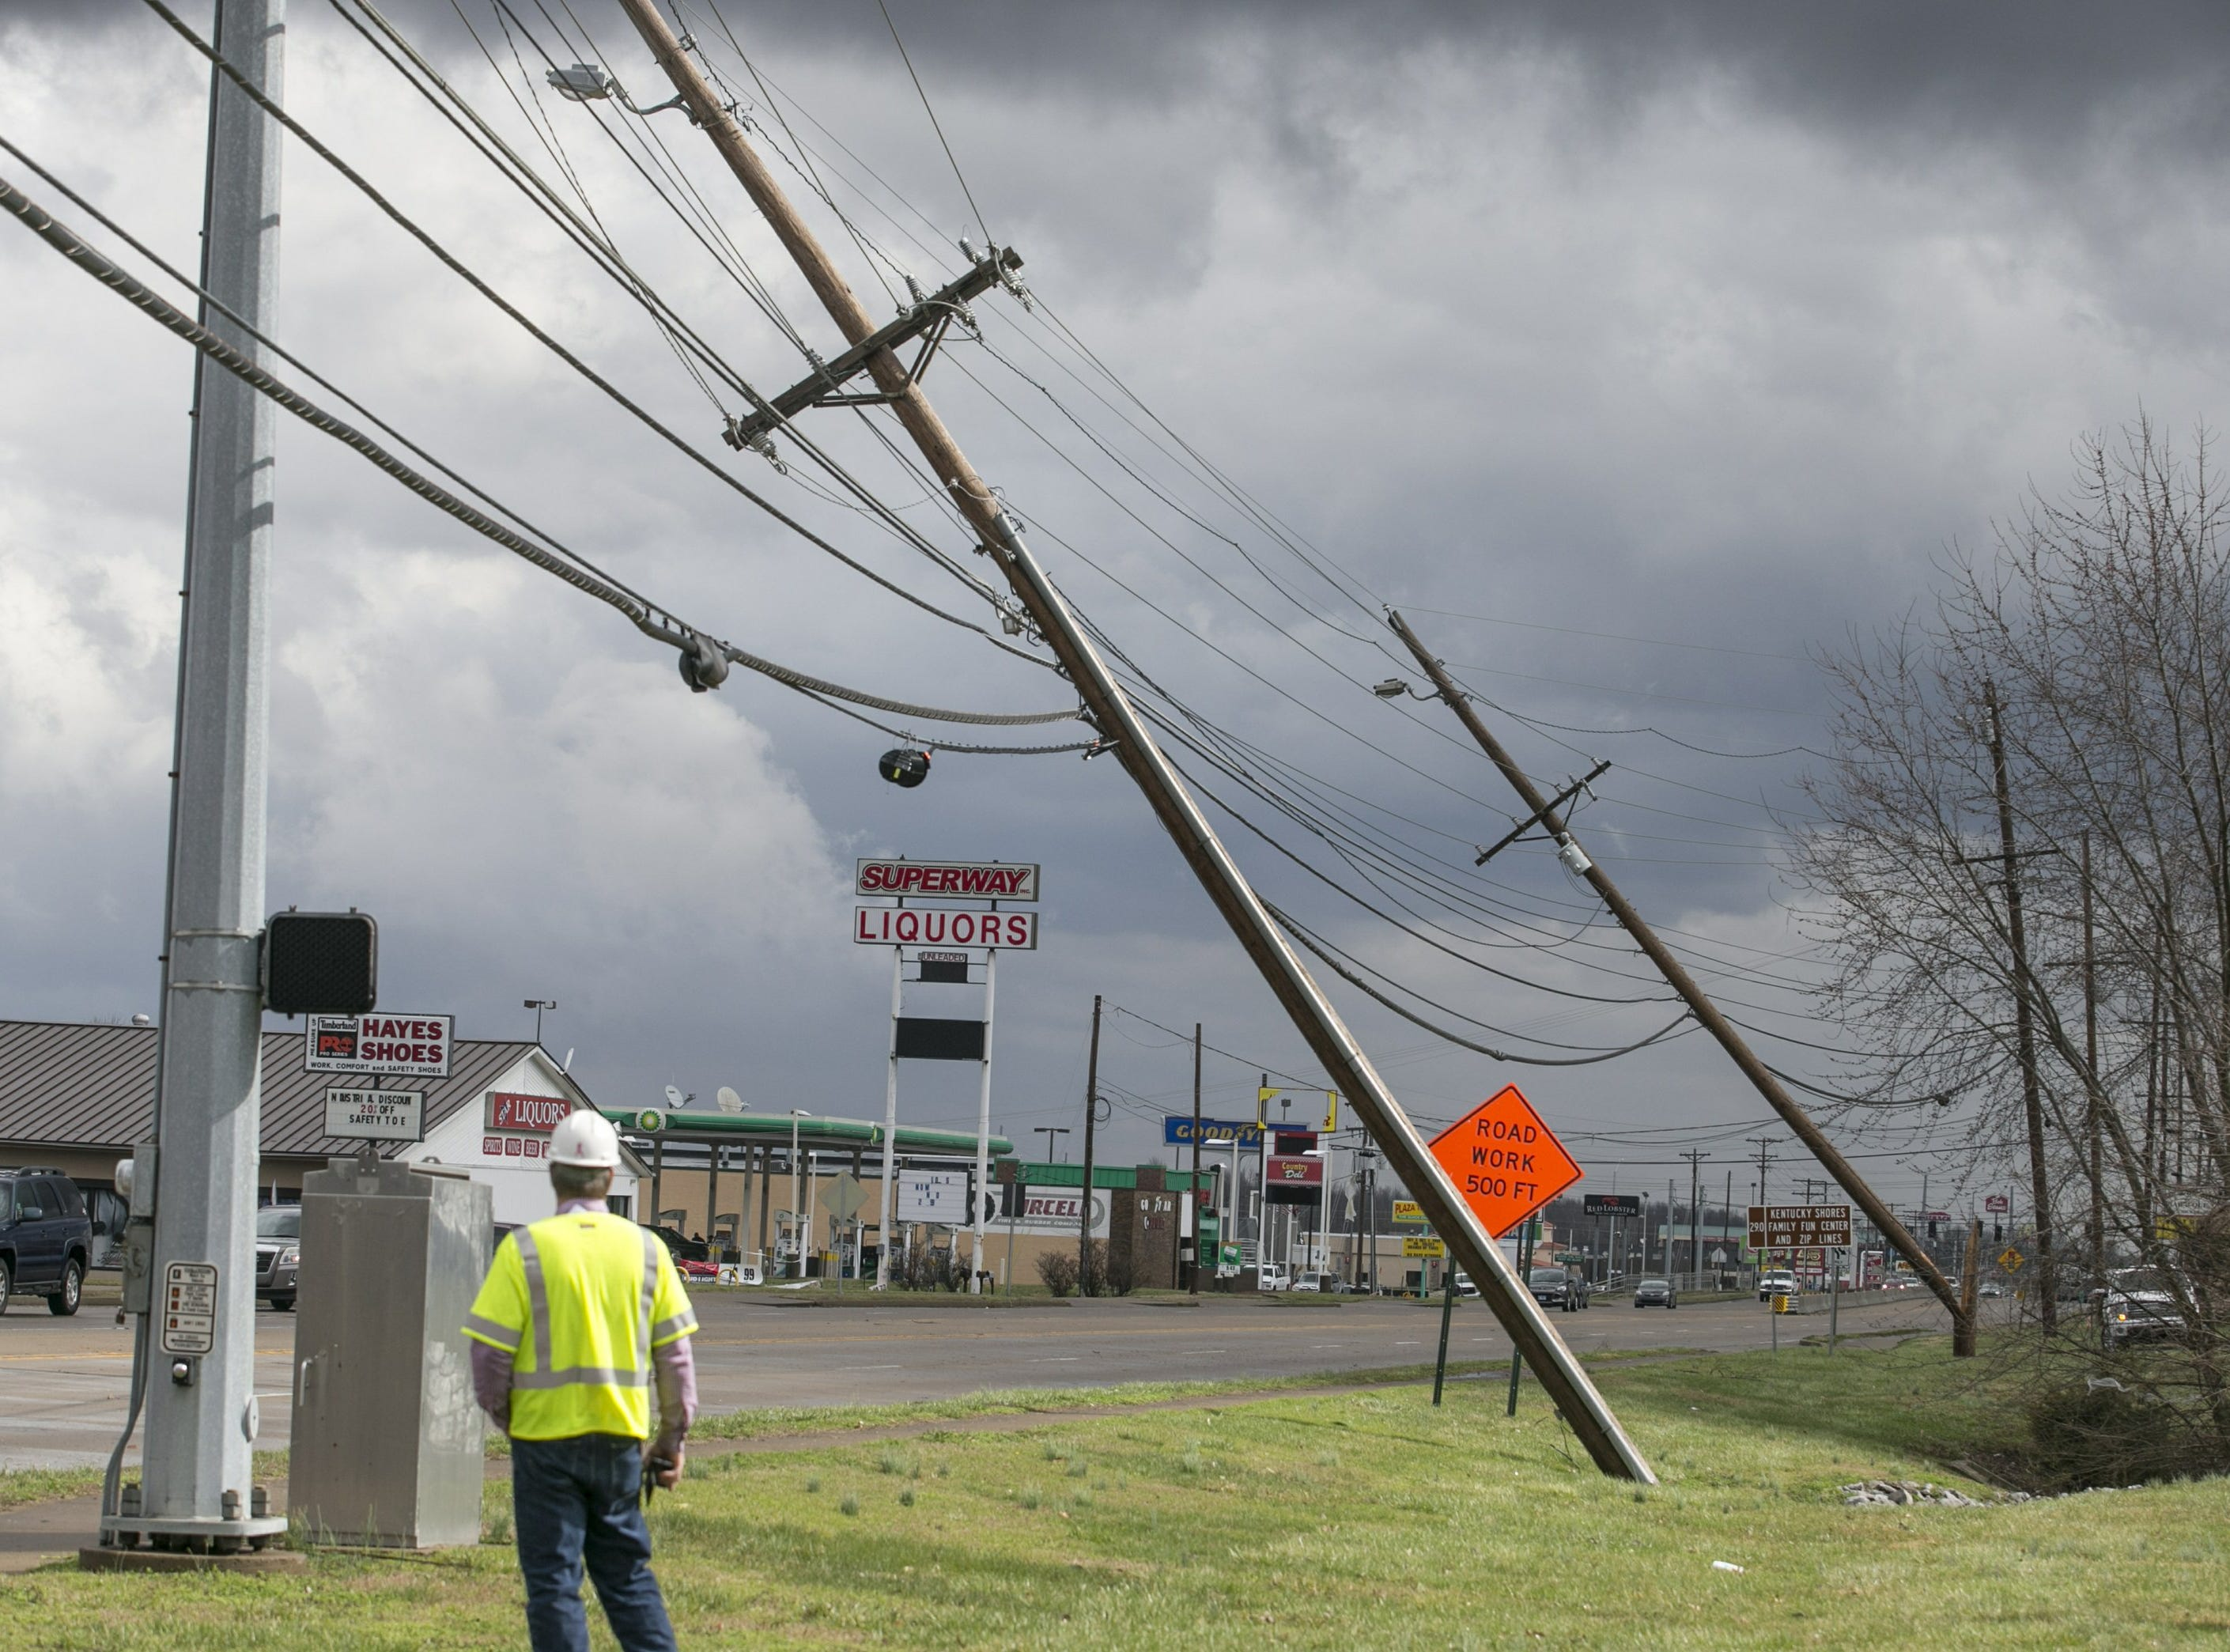 Power lines are down in Paducah, Ky. on Thursday, March 14, 2019. This Thursday, March 14, 2019 photo shows damage to the Wilbert Vault Co., in West Paducah, Ky. A tornado left a path in western Kentucky from Lovelaceville through the West Paducah area, according to Keith Todd, a spokesman for the Kentucky Transportation Cabinet. He said the public was being asked to avoid the area while utility crews, area fire departments, and rescue squads worked to clear utility lines, downed trees and other debris.